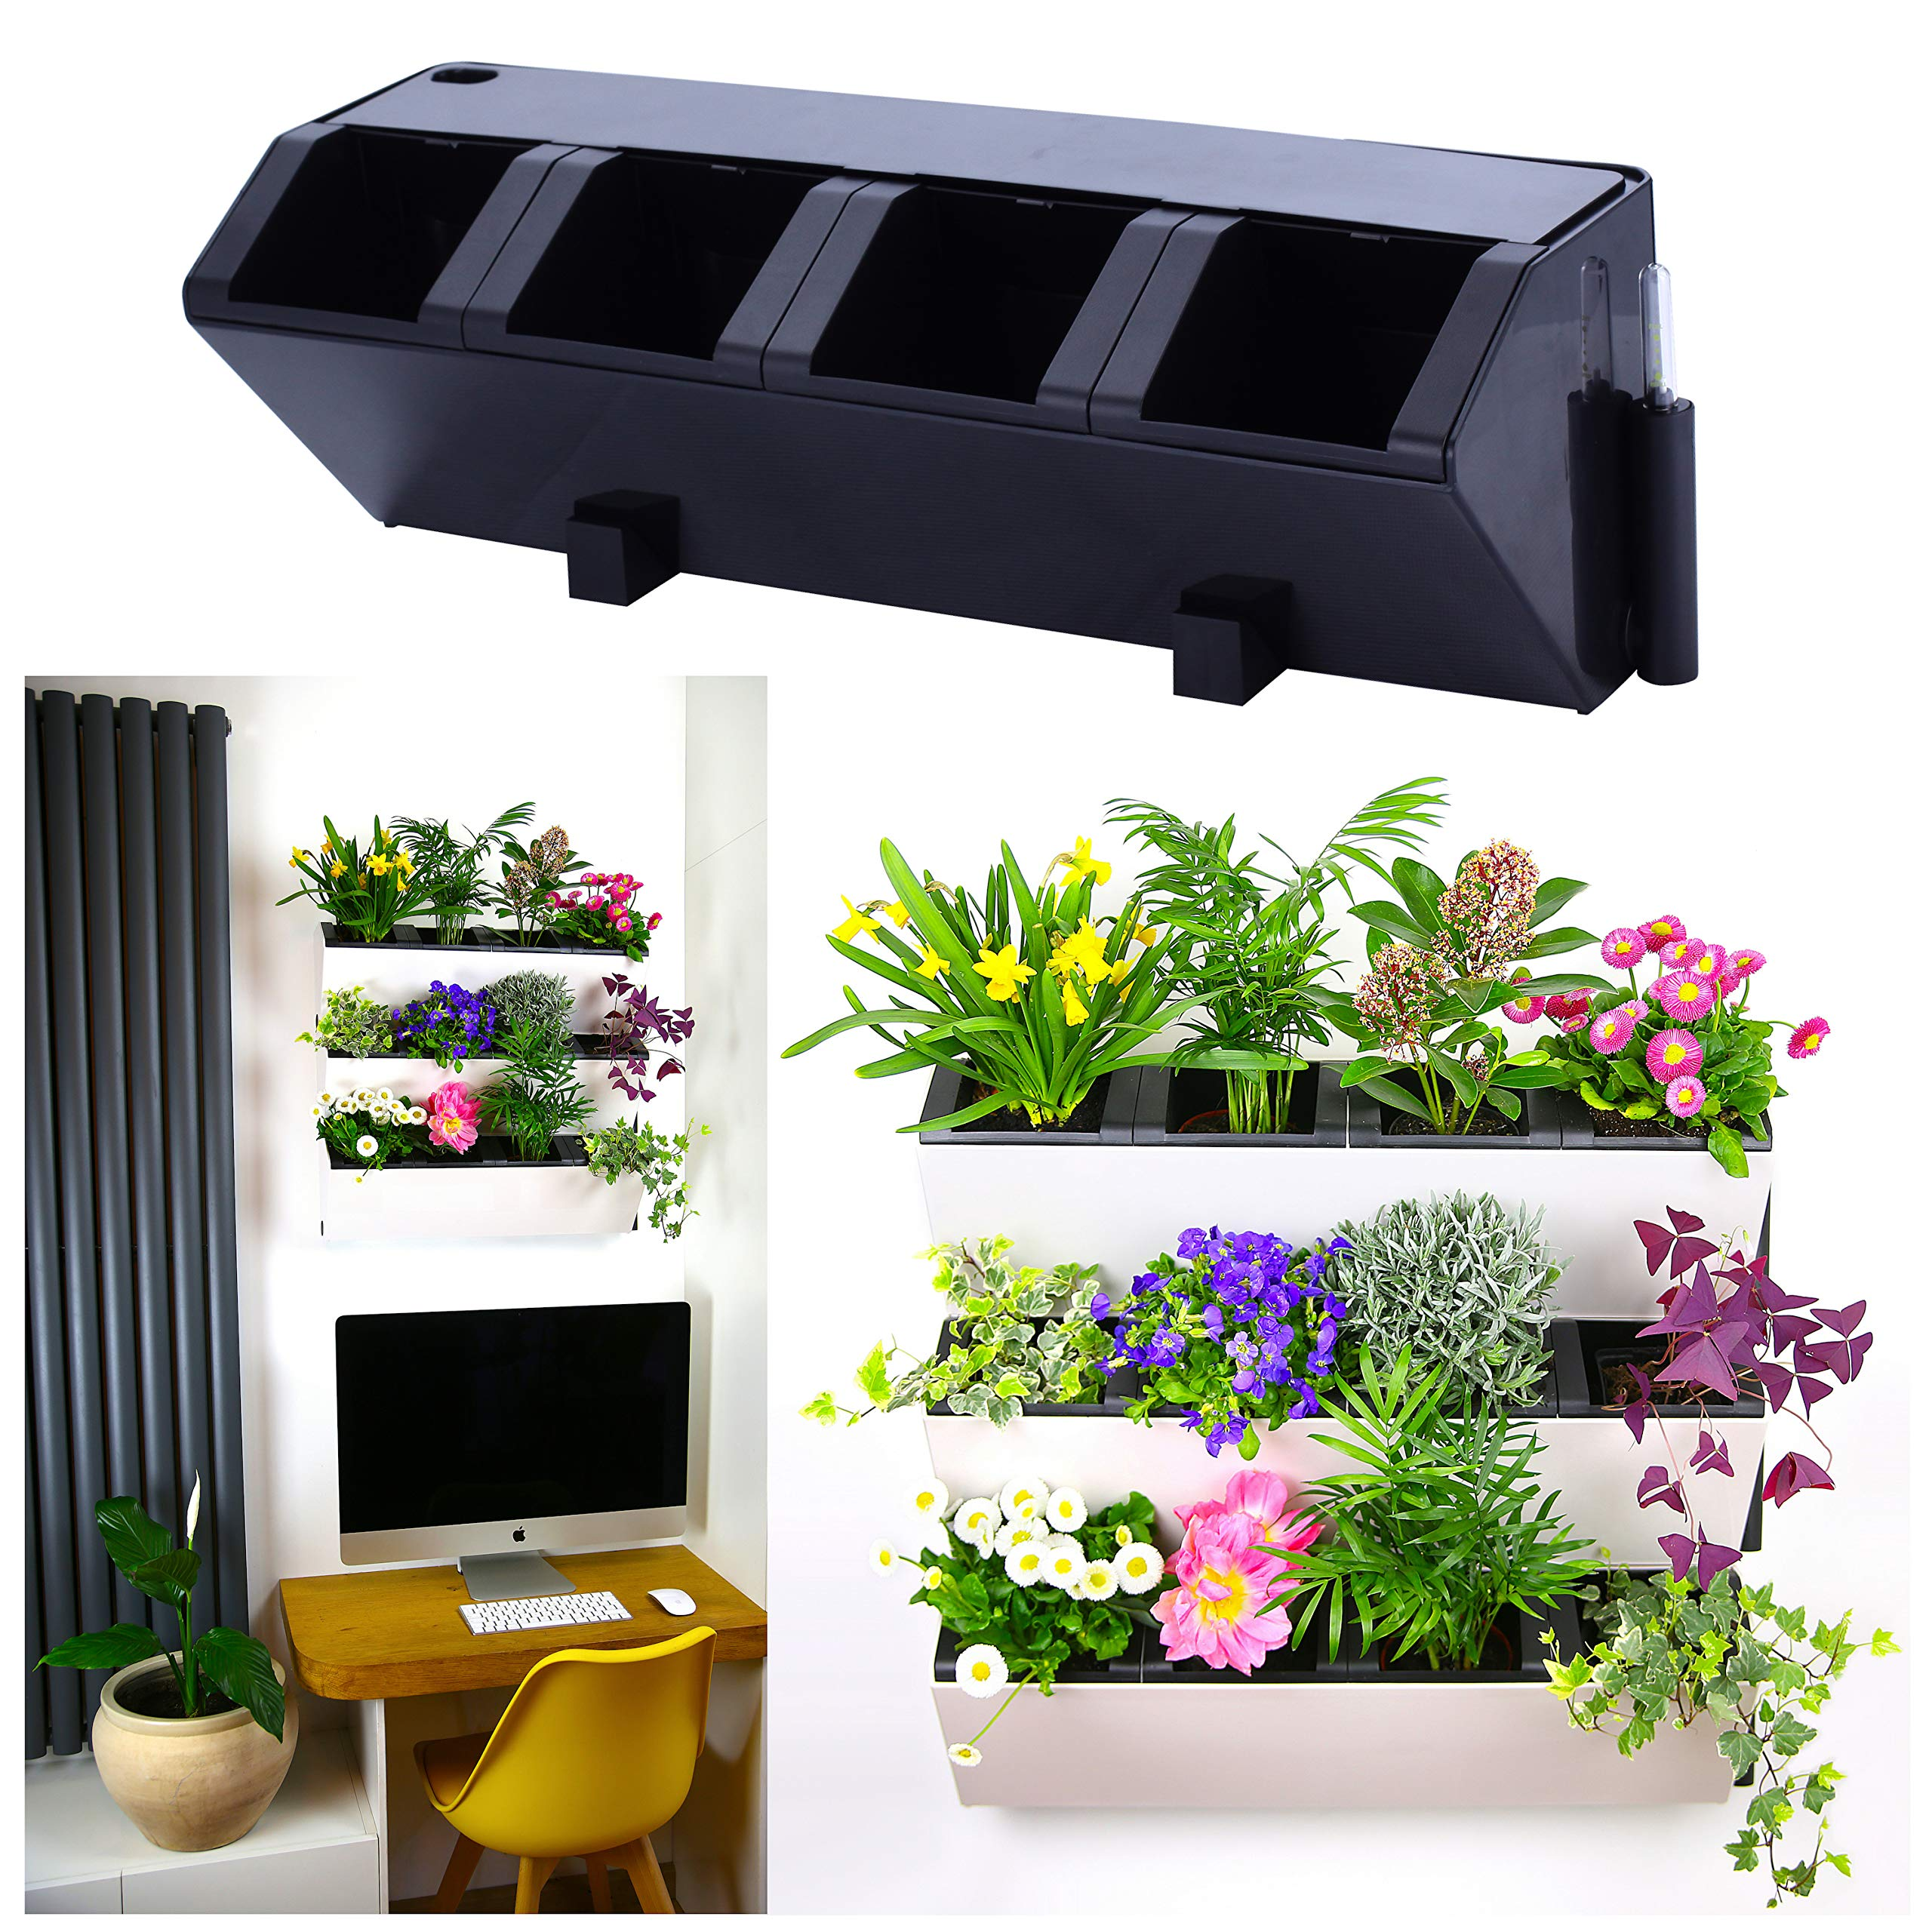 Self Watering Wall Planter by MyEasygro for Indoor and Outdoor | Mounted Hanging Vertical Urban Garden Decor | Green Wall Pots for Flowers, Plants, Herbs, Vegetables, Seeds | 22.5''x7''x7'' (2, Black) by MyEasygro